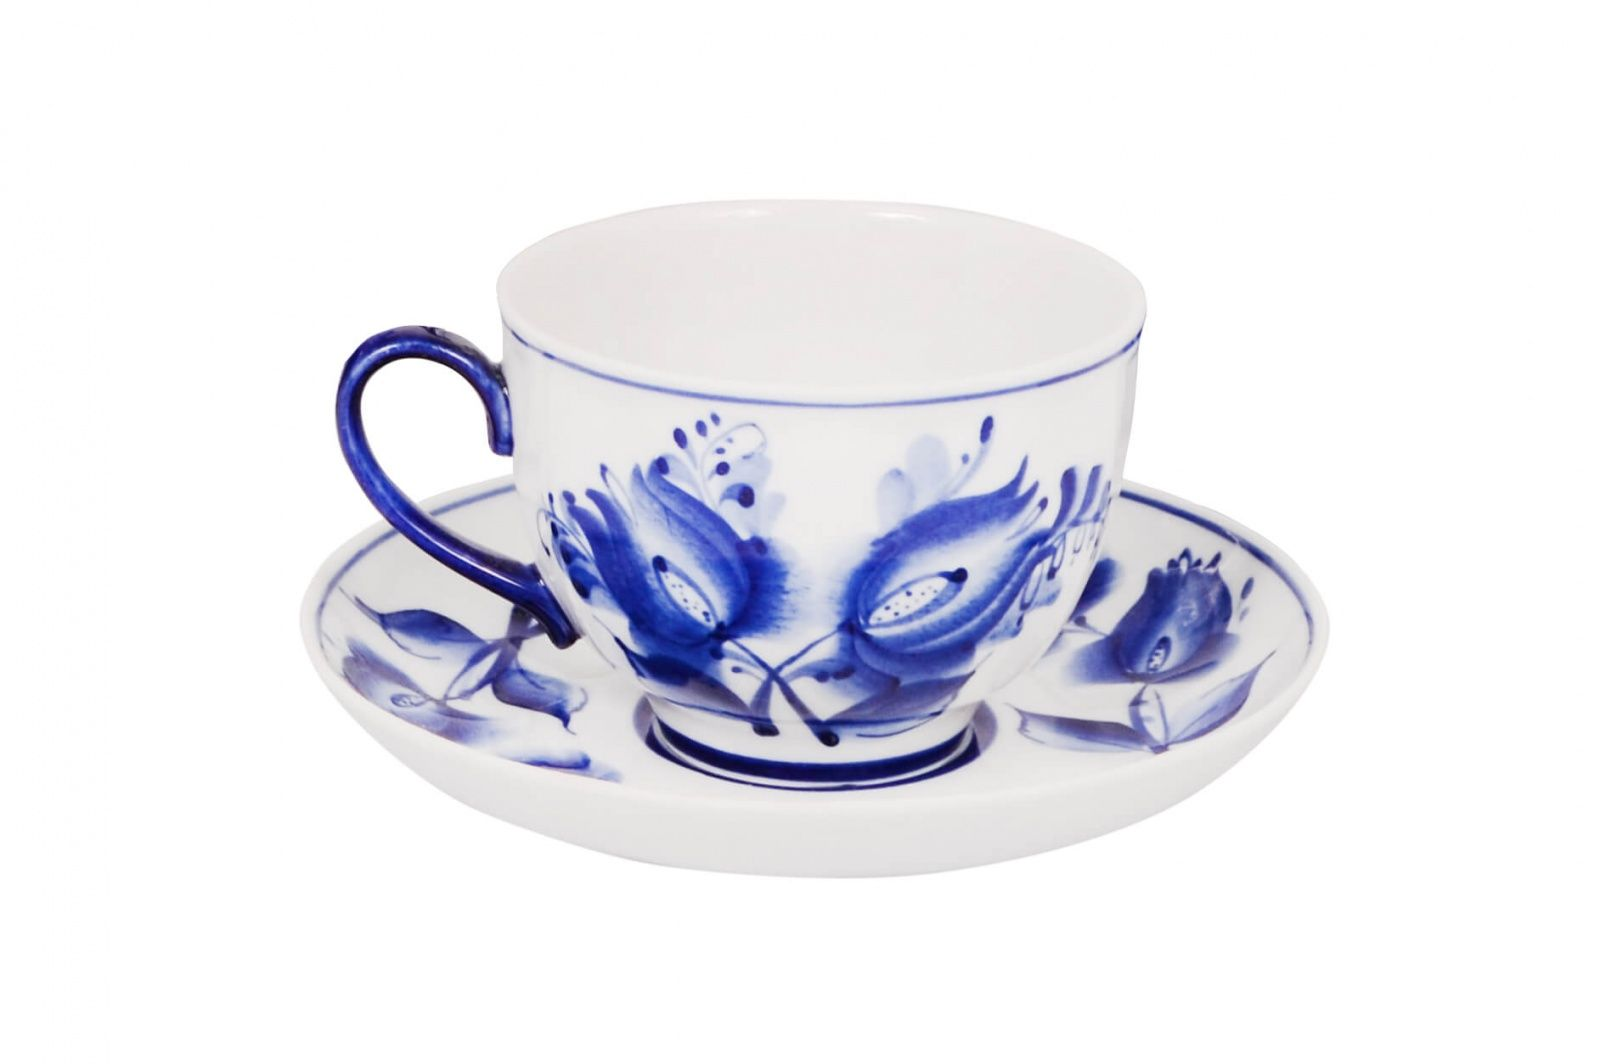 Dulevo porcelain / Tea cup and saucer set, 12 pcs., 275 ml Pomegranate Tulips